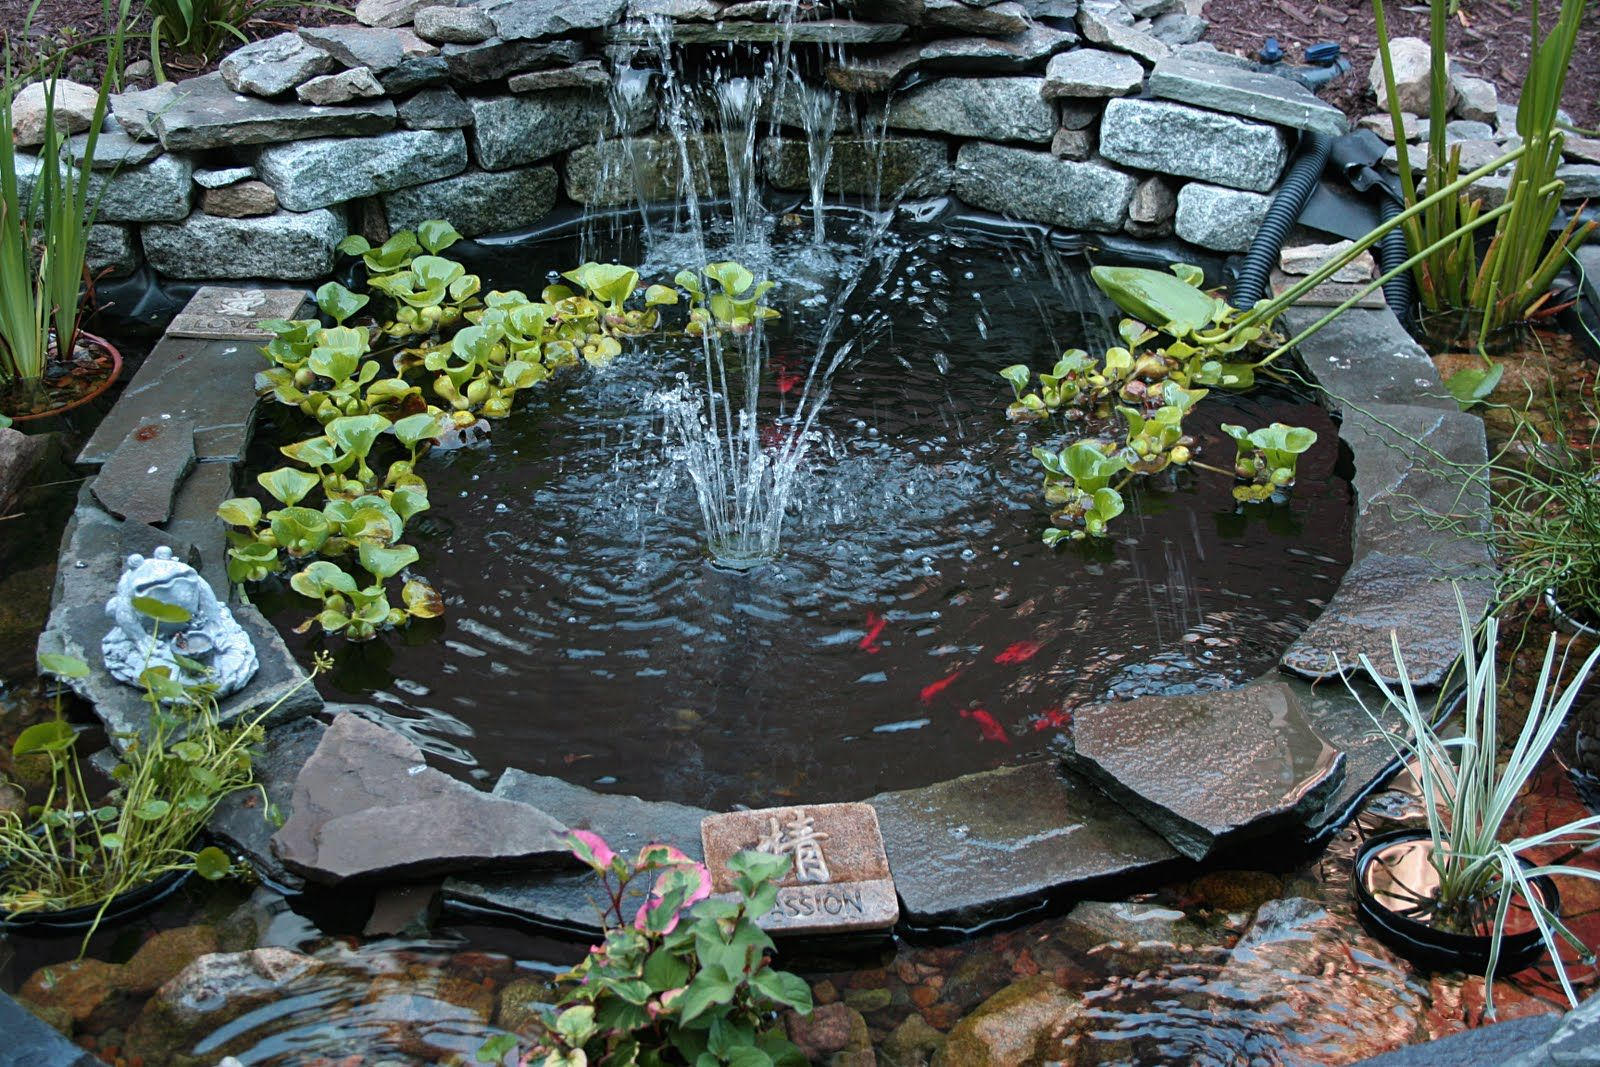 Decorations interesting gray white ornate rock with for The backyard pond